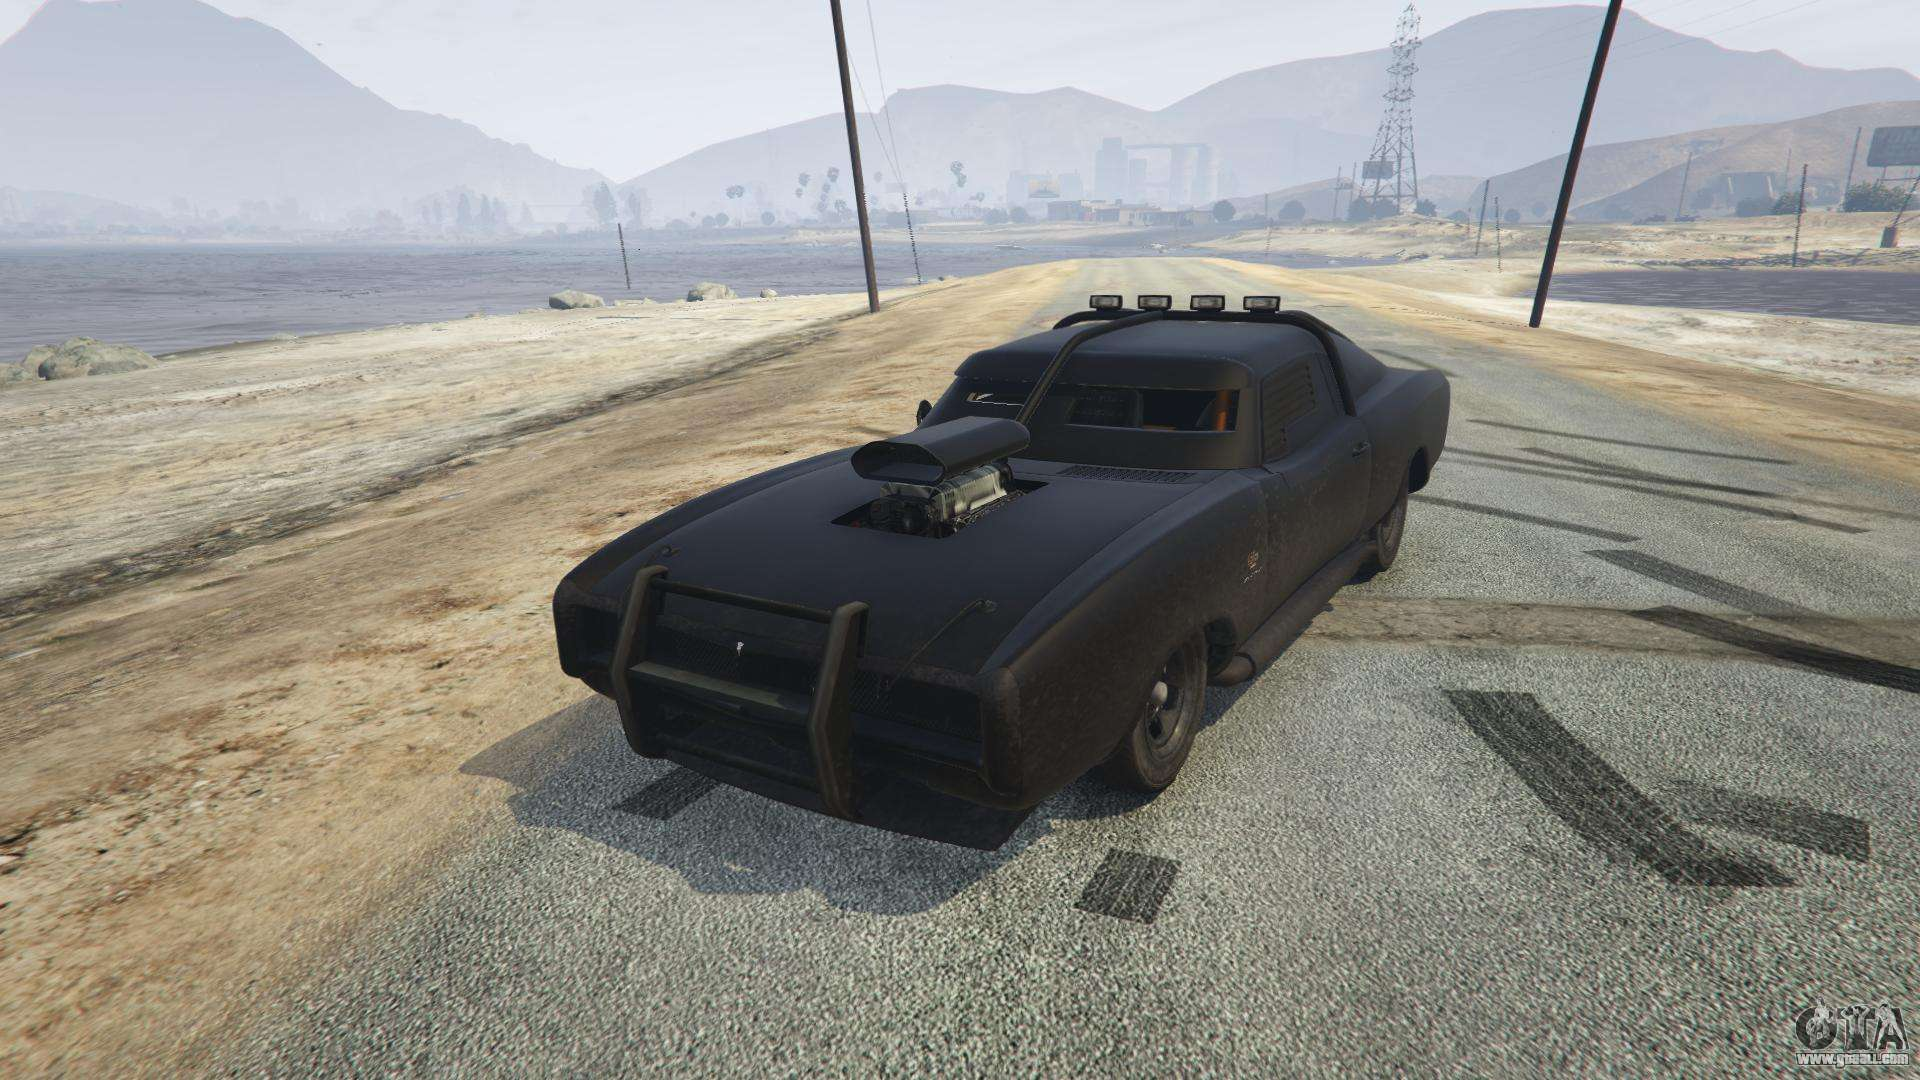 Duke O'Death from GTA 5 - front view